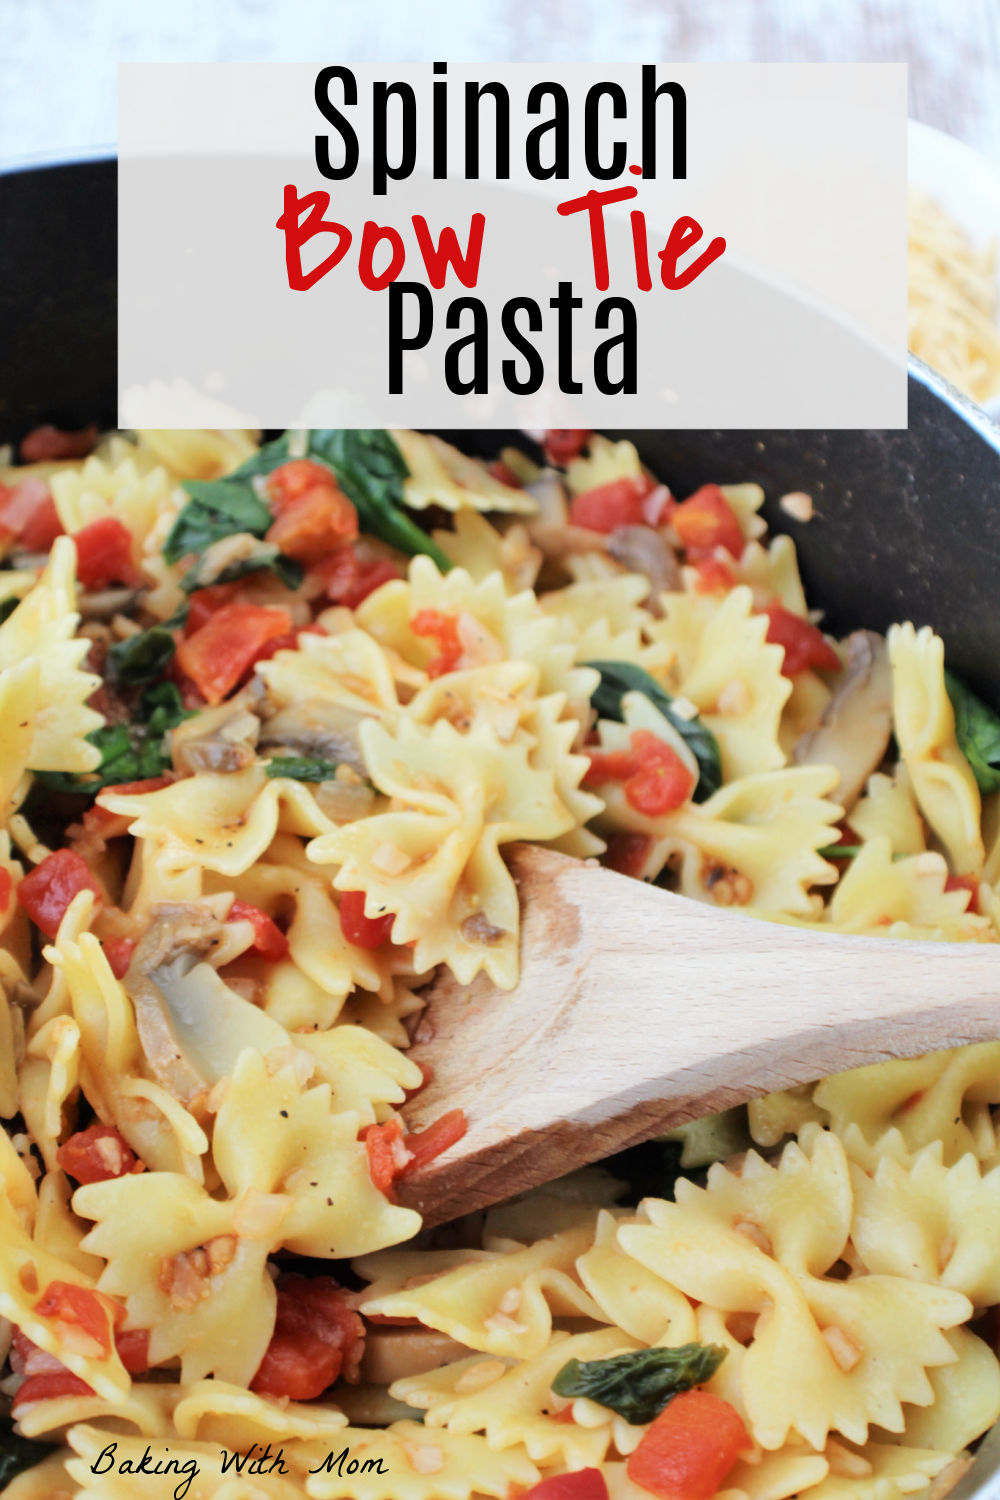 wooden spoon holding pasta and tomatoes with mushrooms and spinach.